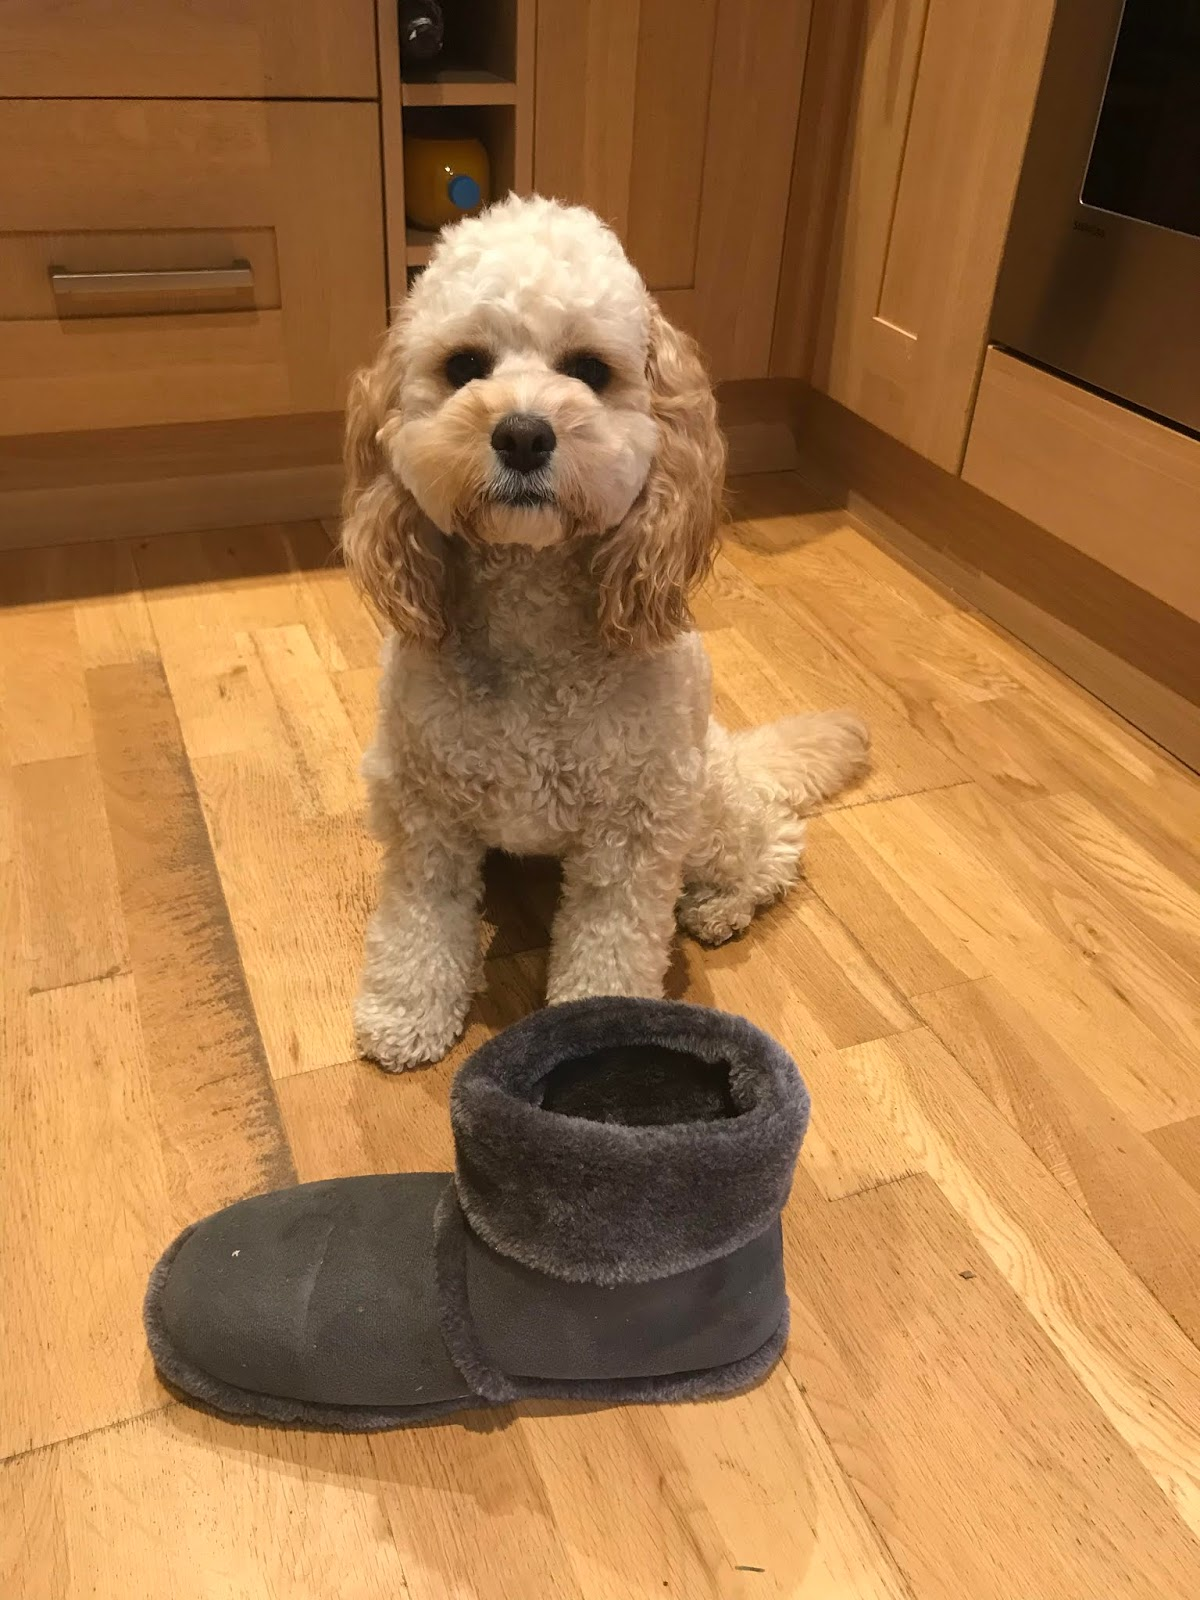 A cute dog guards a slipper. Part of an article by Is This Mutton? on slippers, the ultimate taboo subject!